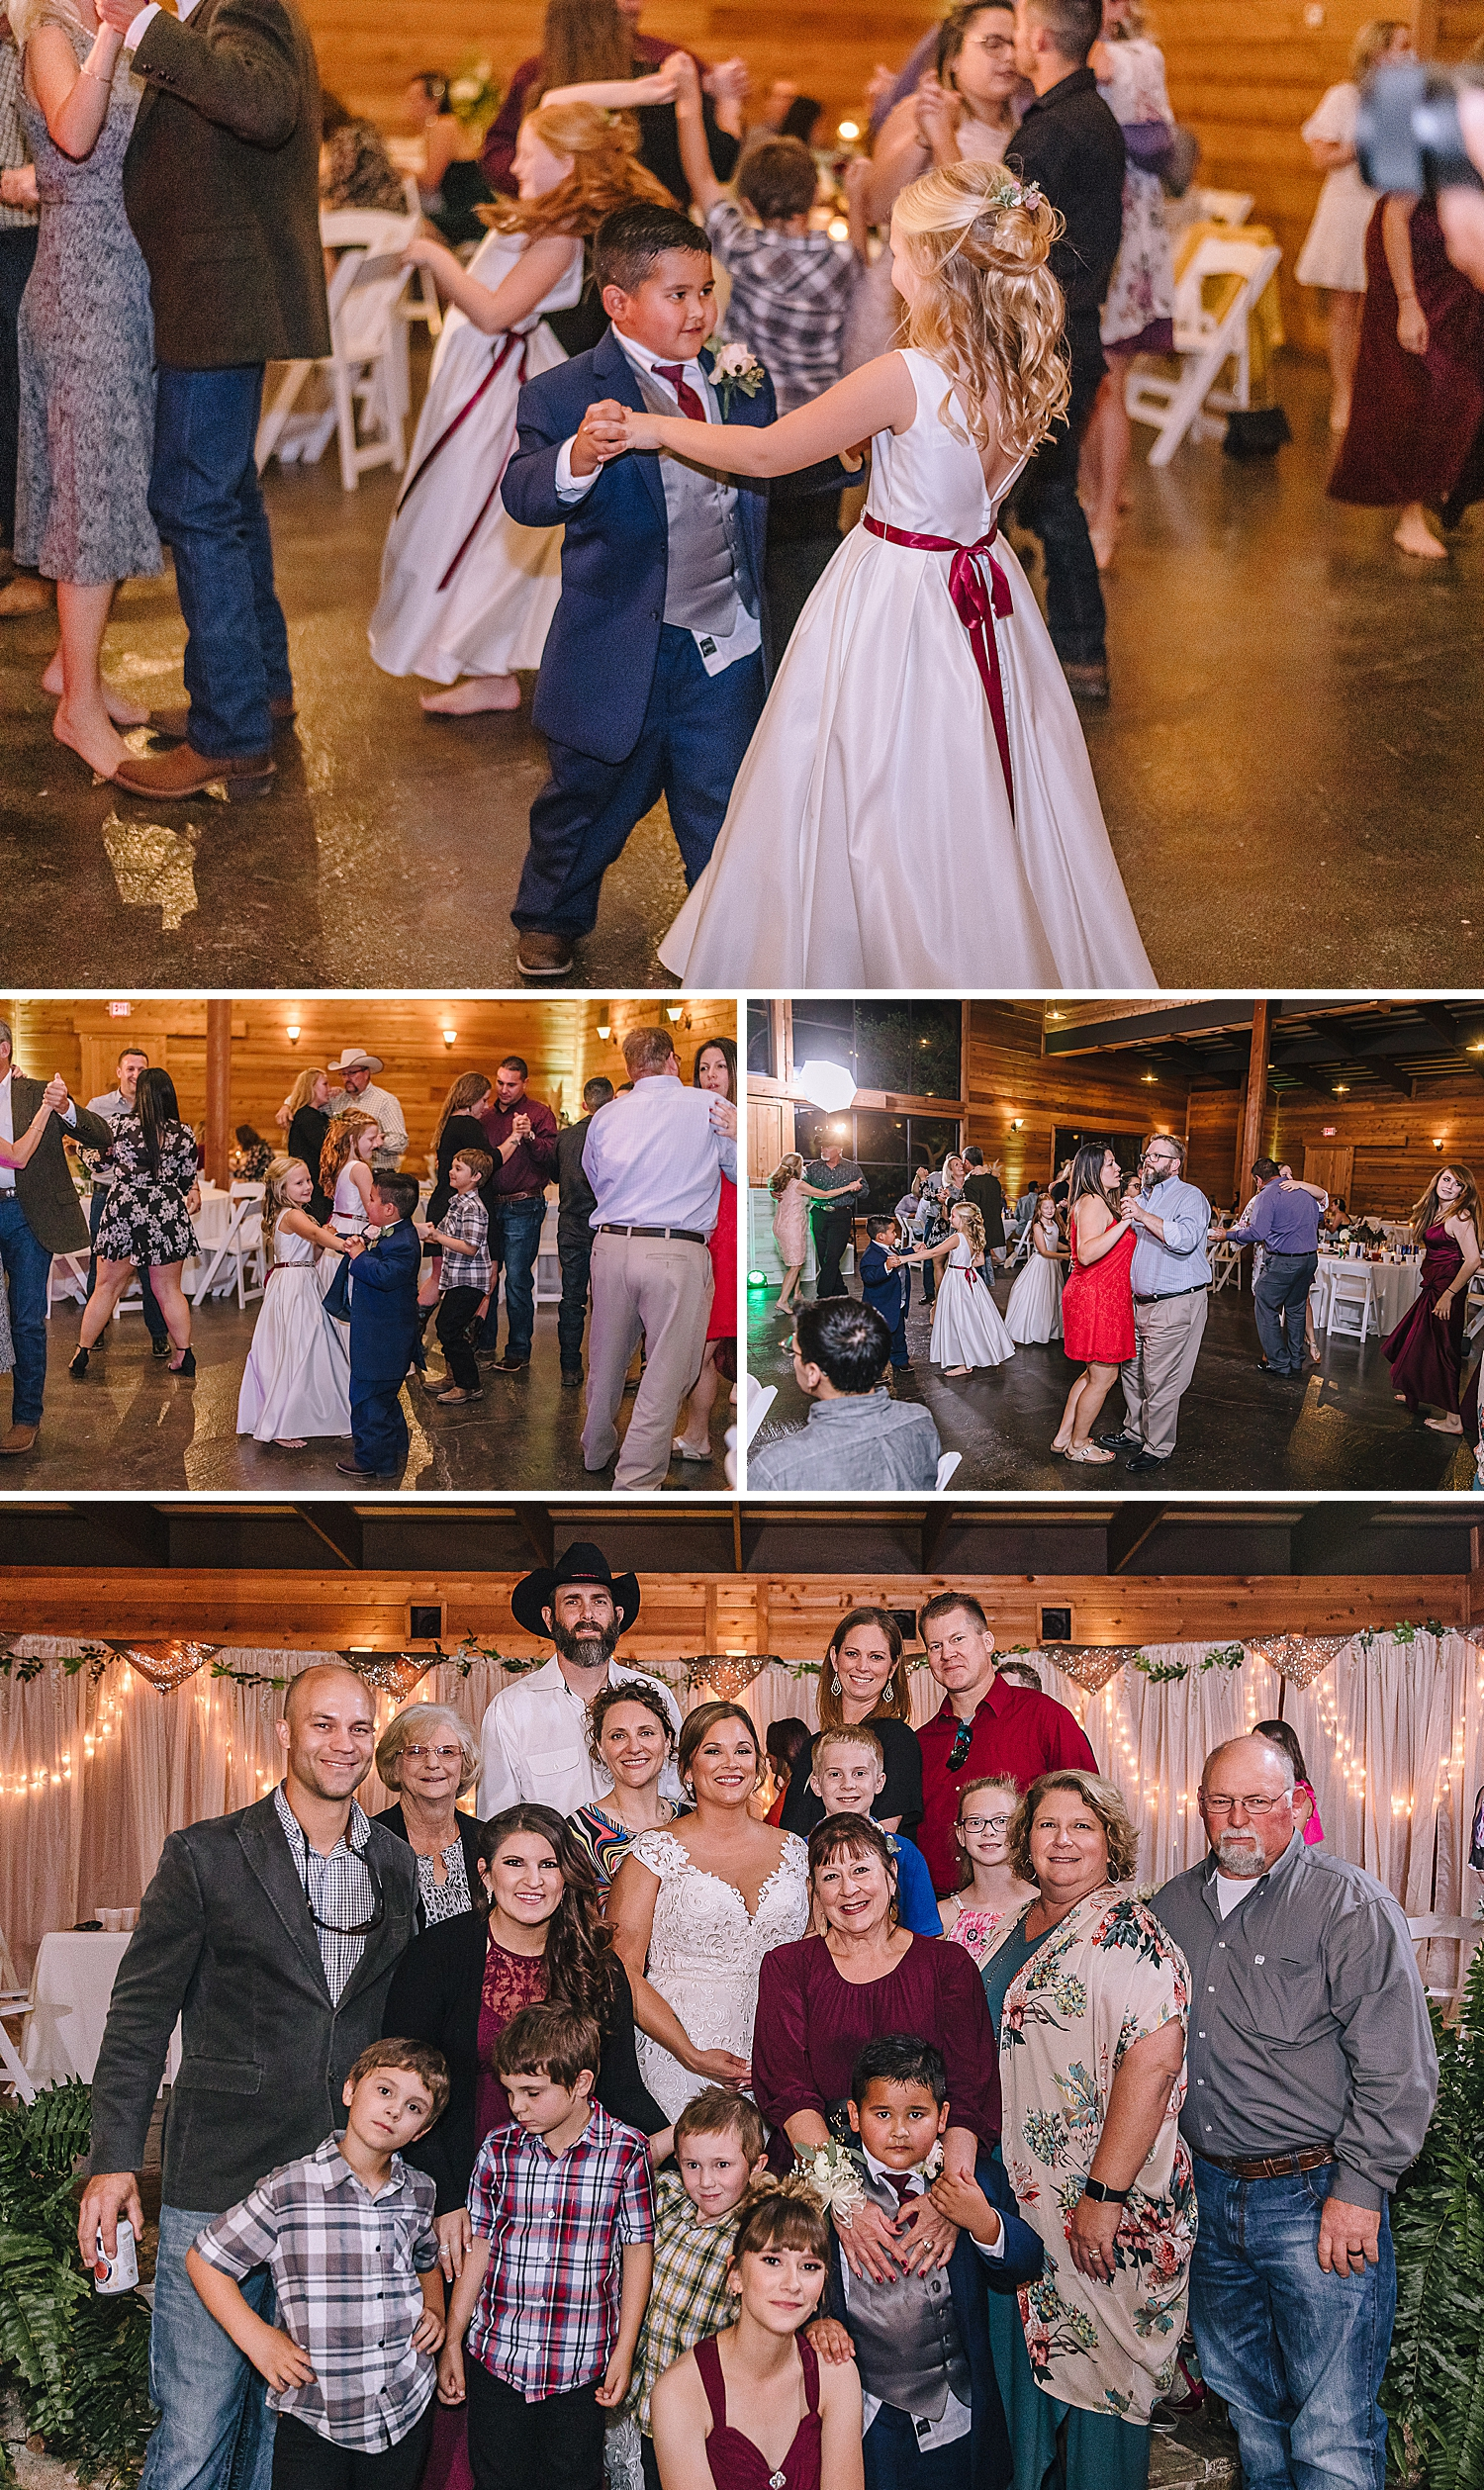 Geronimo-Oaks-Wedding-Venue-Seguin-Texas-Elegant-Navy-Burgundy-Wedding-Carly-Barton-Photography_0090.jpg